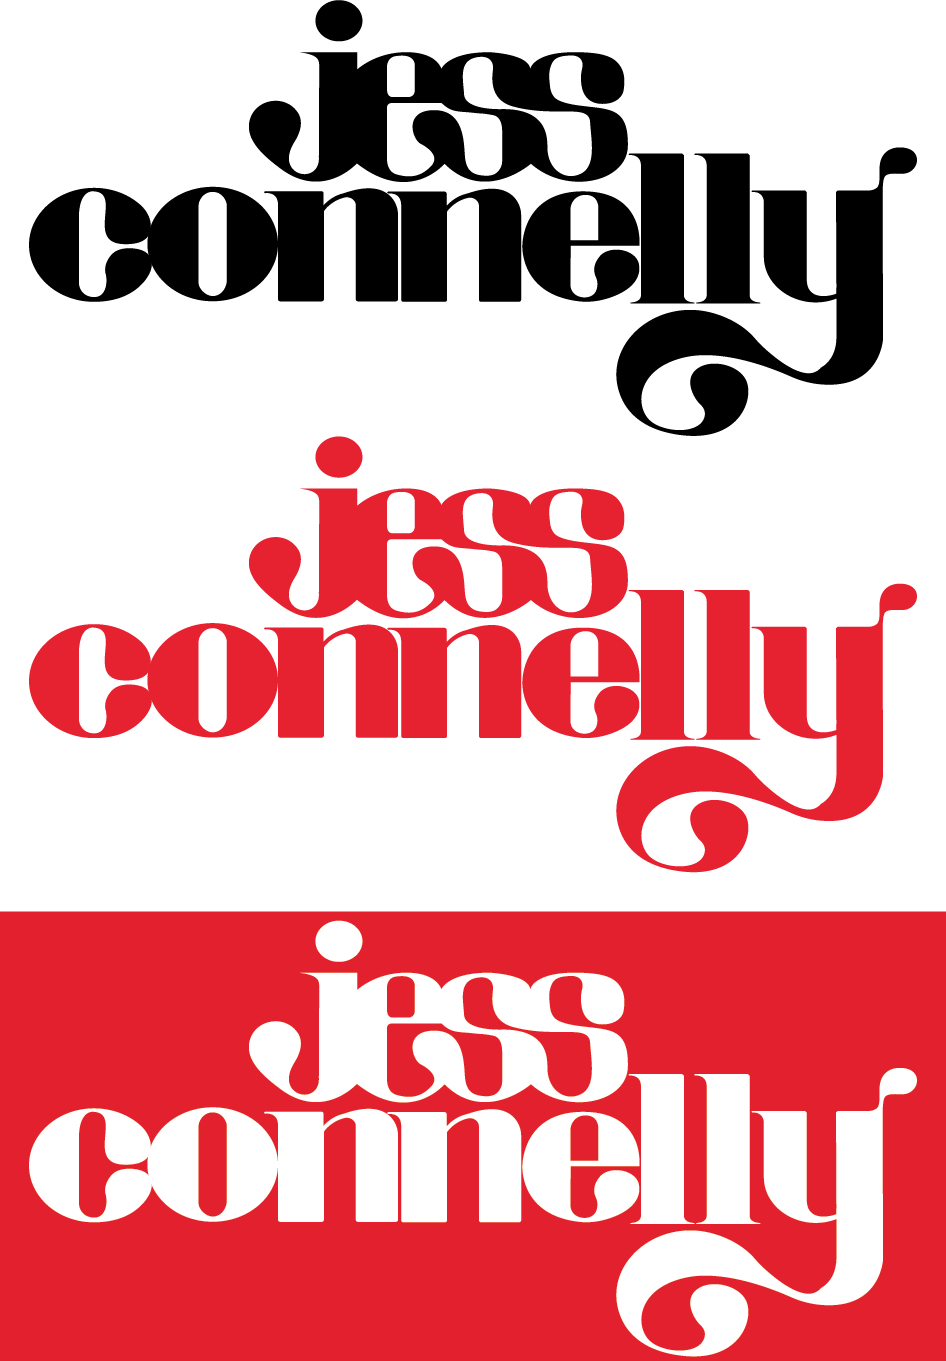 JESS_CONNELLY_LOGO.png